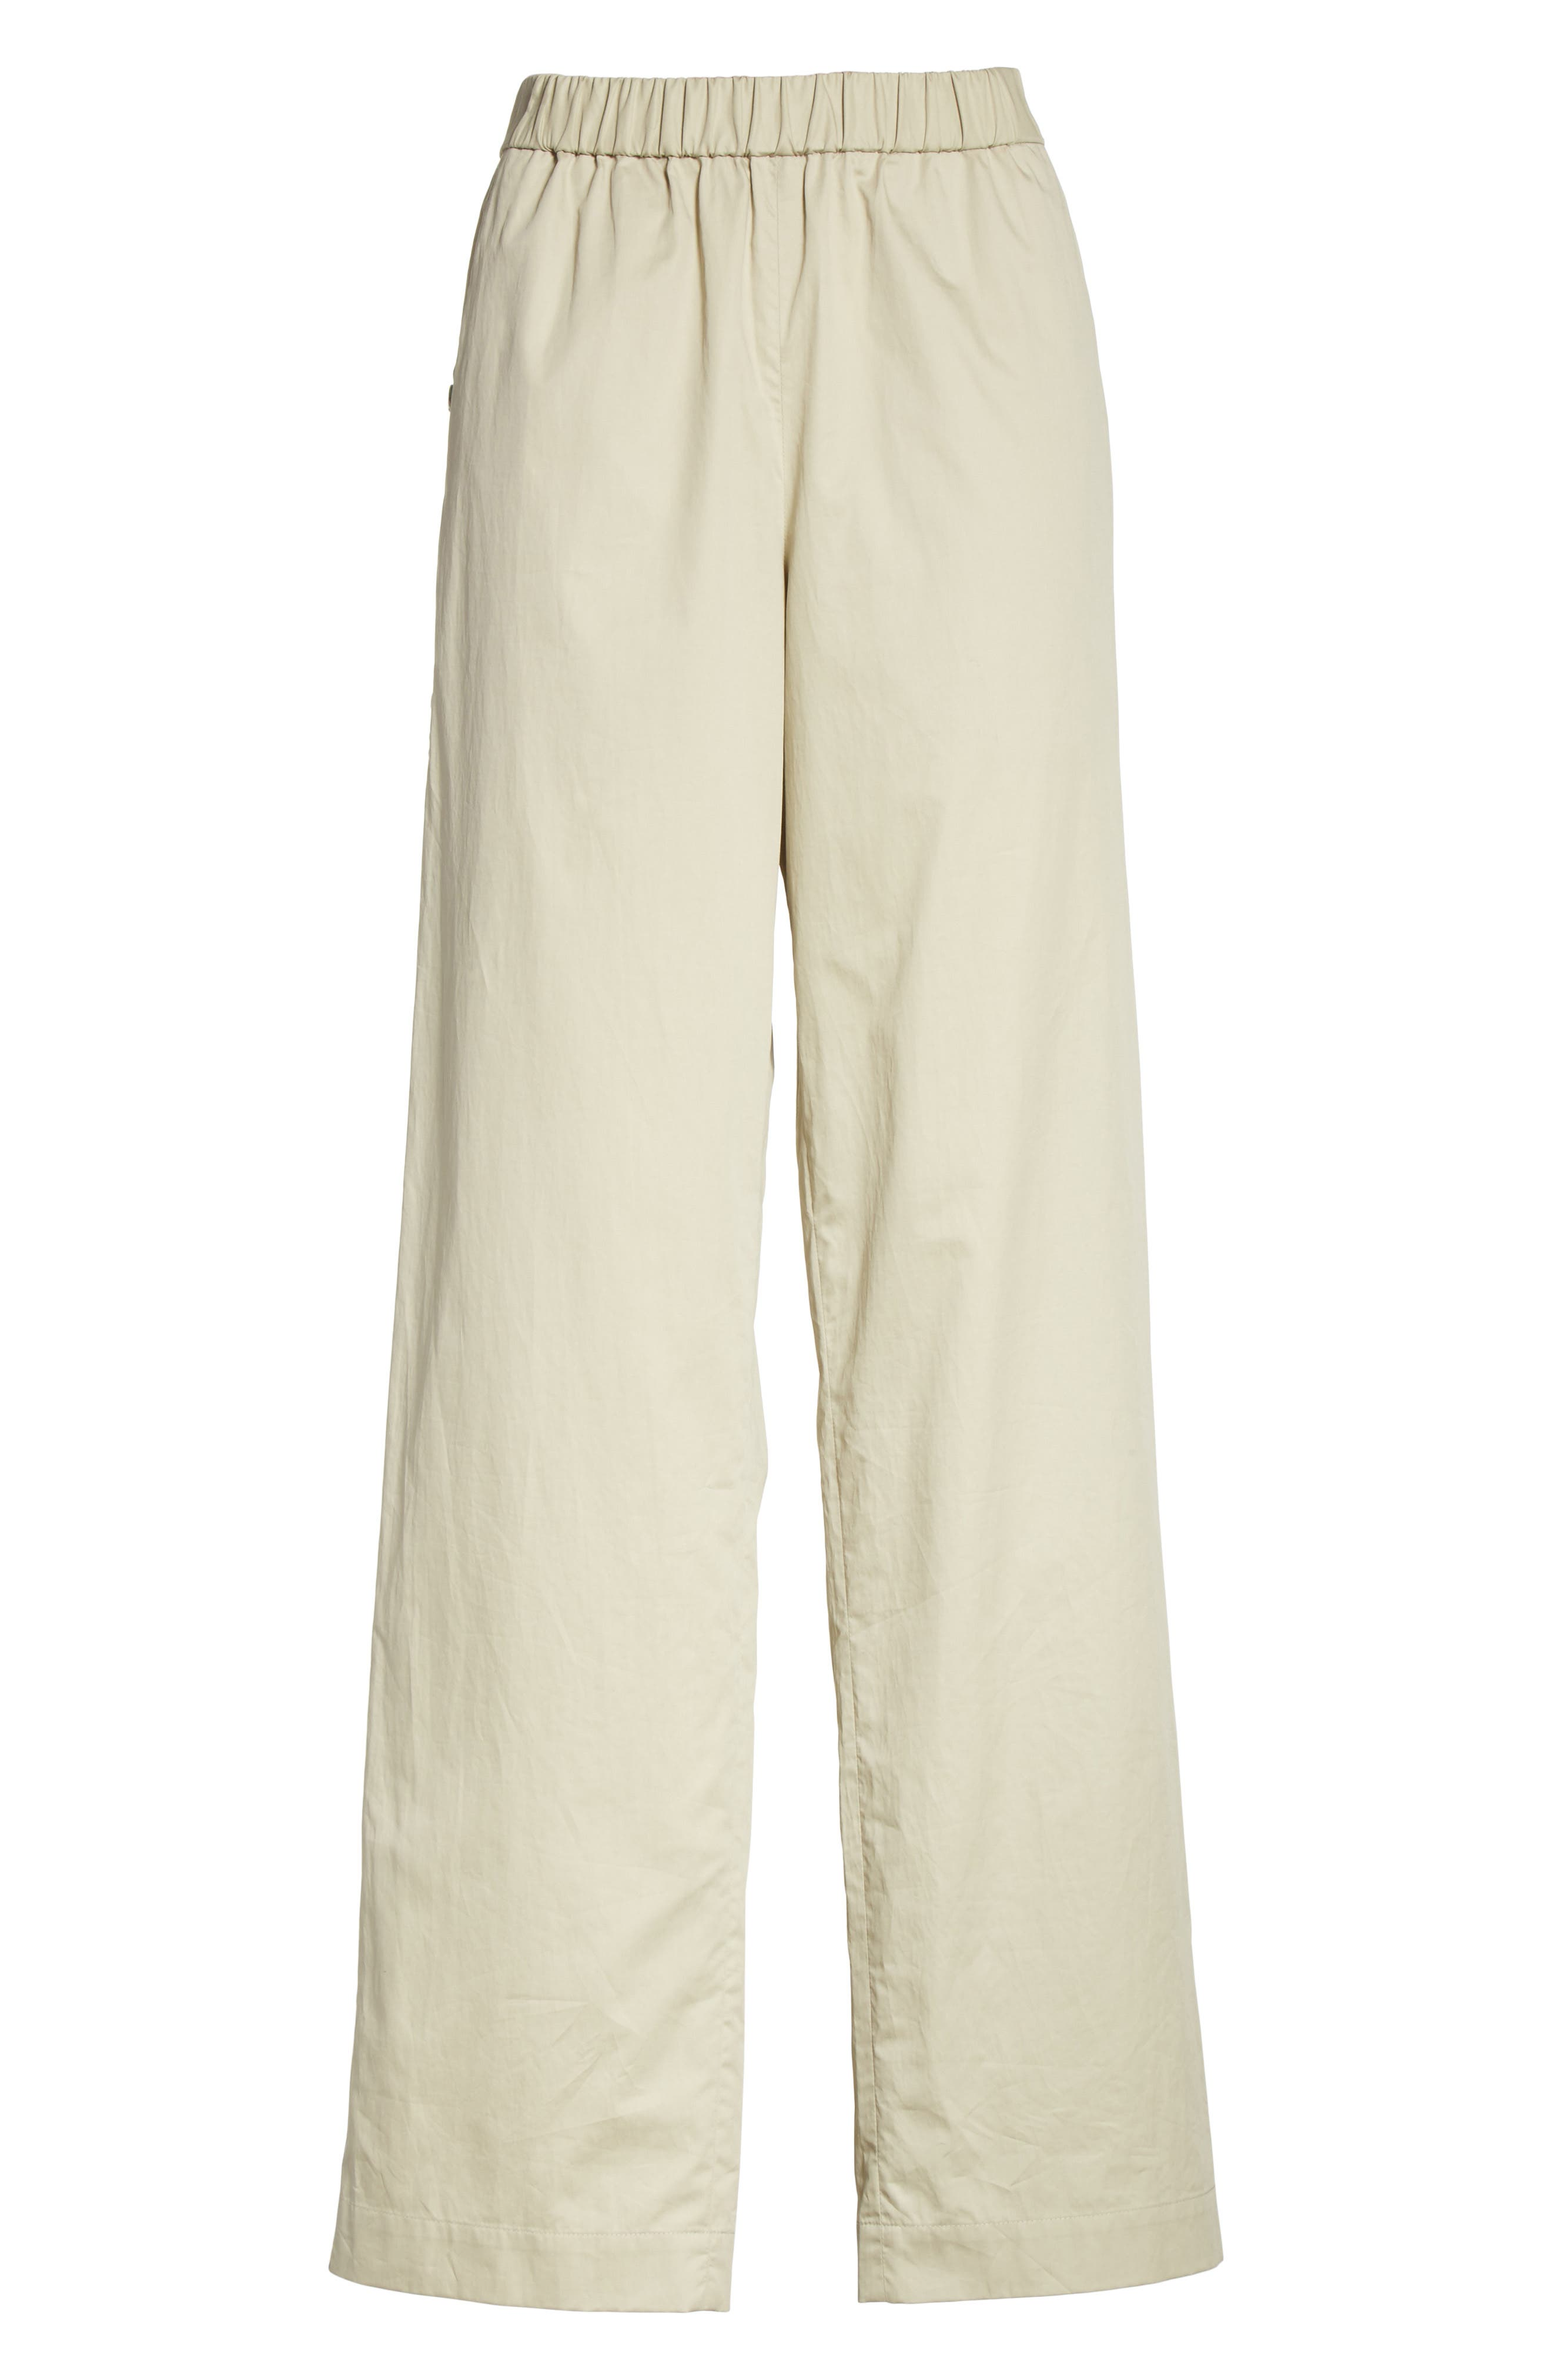 Snap Side Track Pants,                             Alternate thumbnail 11, color,